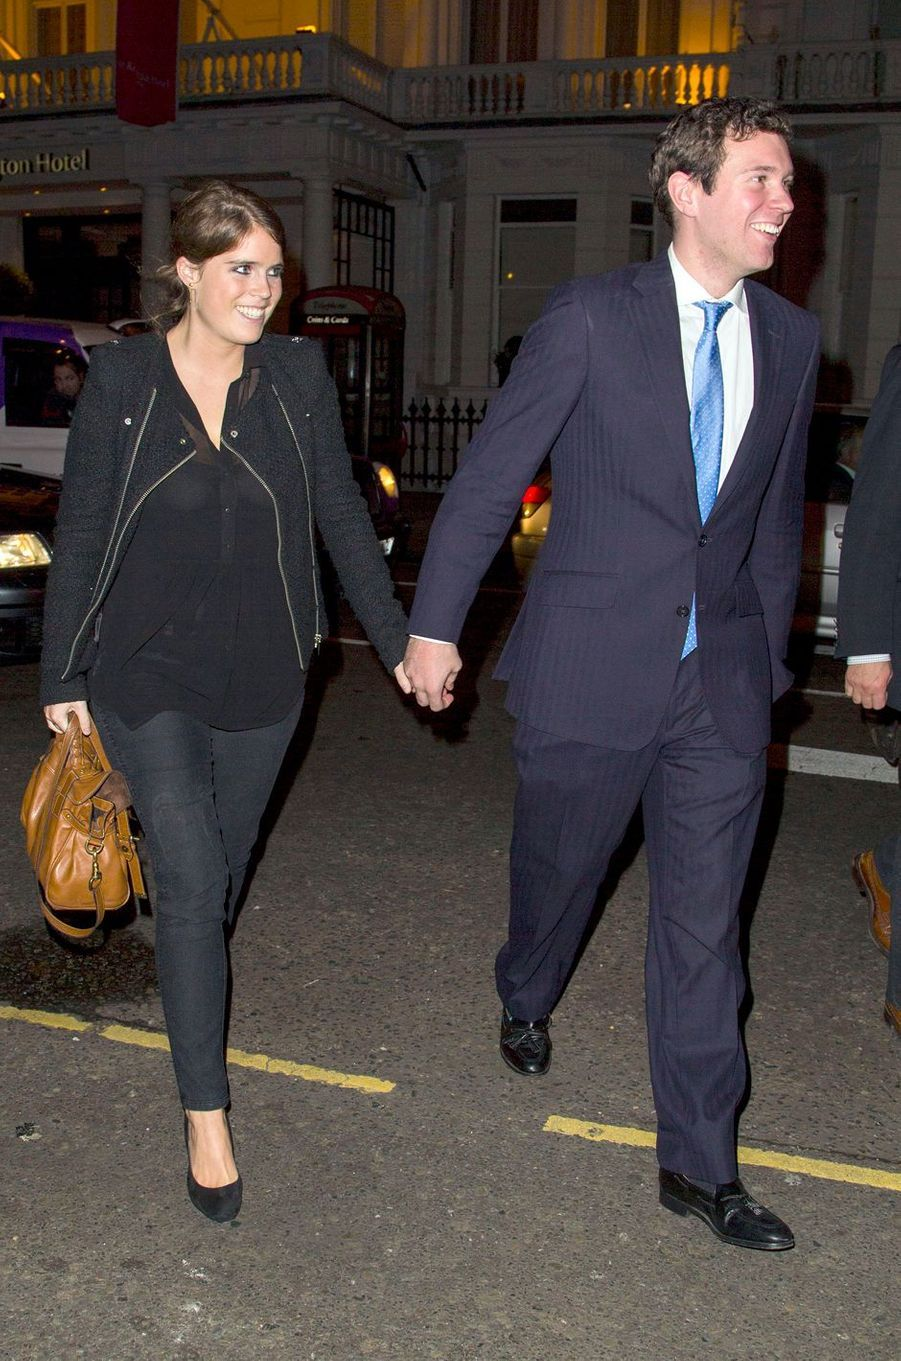 La princesse Eugenie d'York et Jack Brooksbank, le 18 octobre 2012